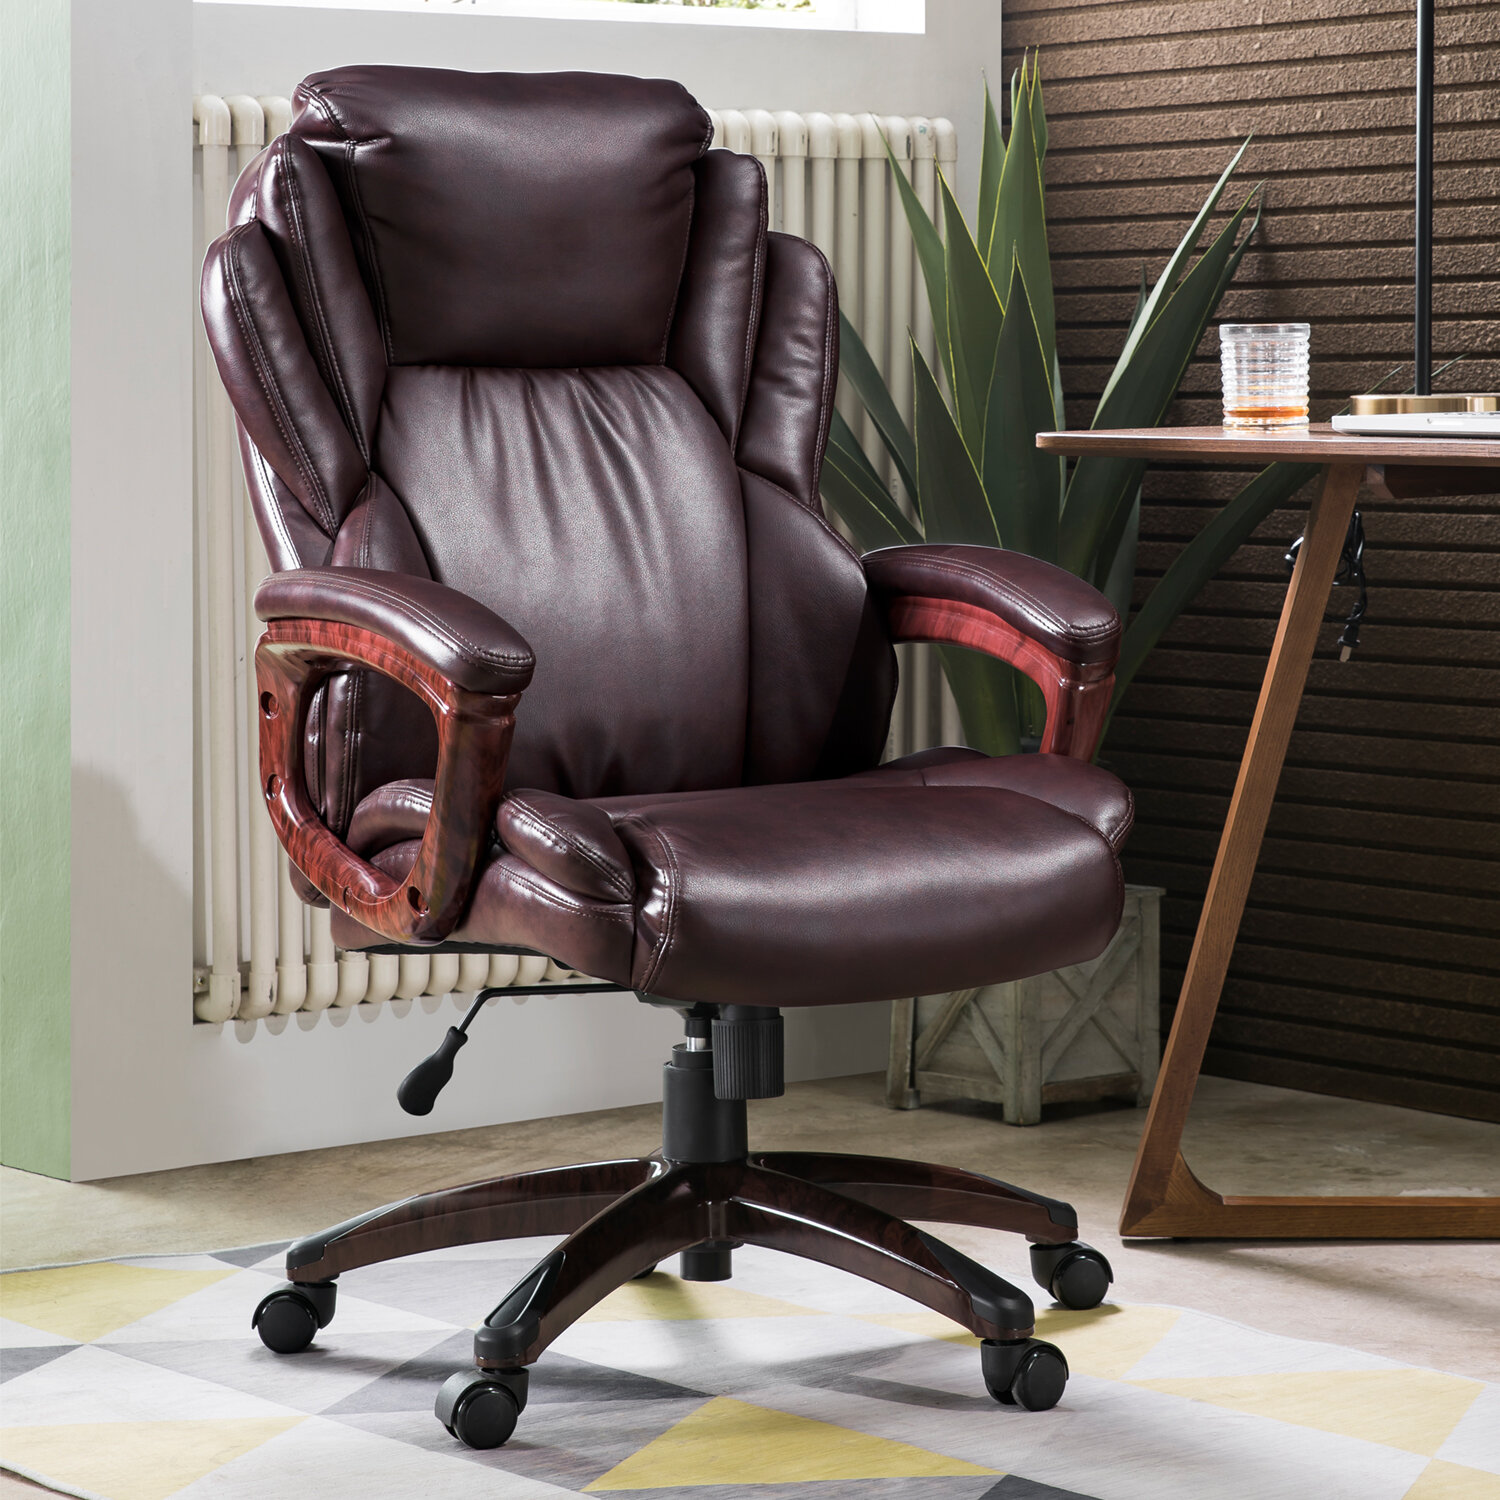 Brayden Studio Albaugh Executive Chair Reviews Wayfair